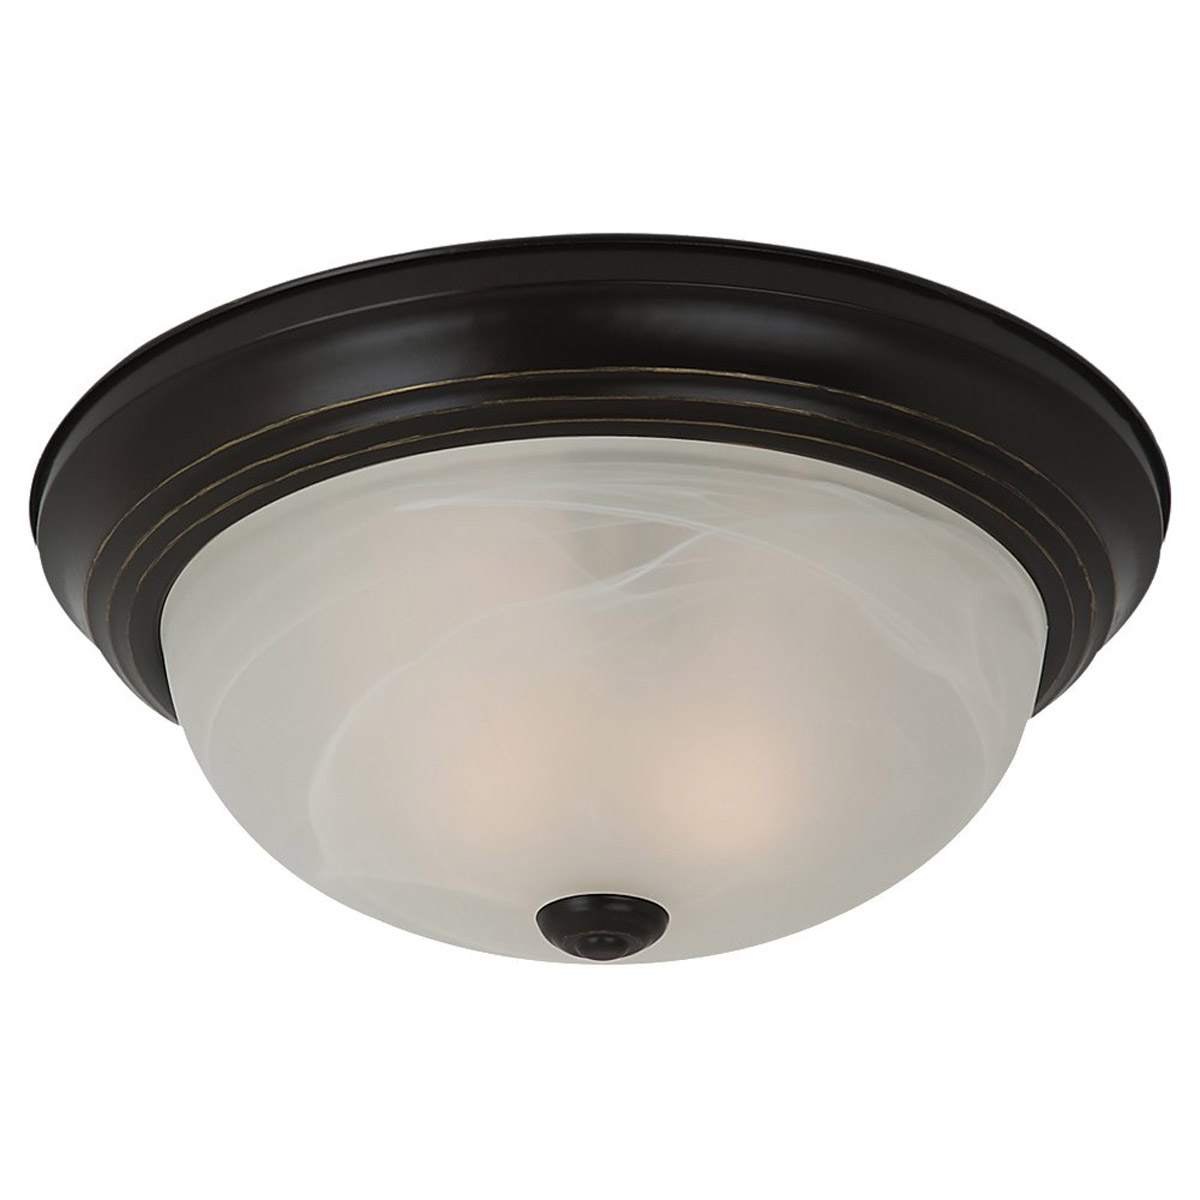 Sea Gull 75942BLE-782 Windgate 2 Light 13 inch Heirloom Bronze Flush Mount Ceiling Light in Fluorescent photo